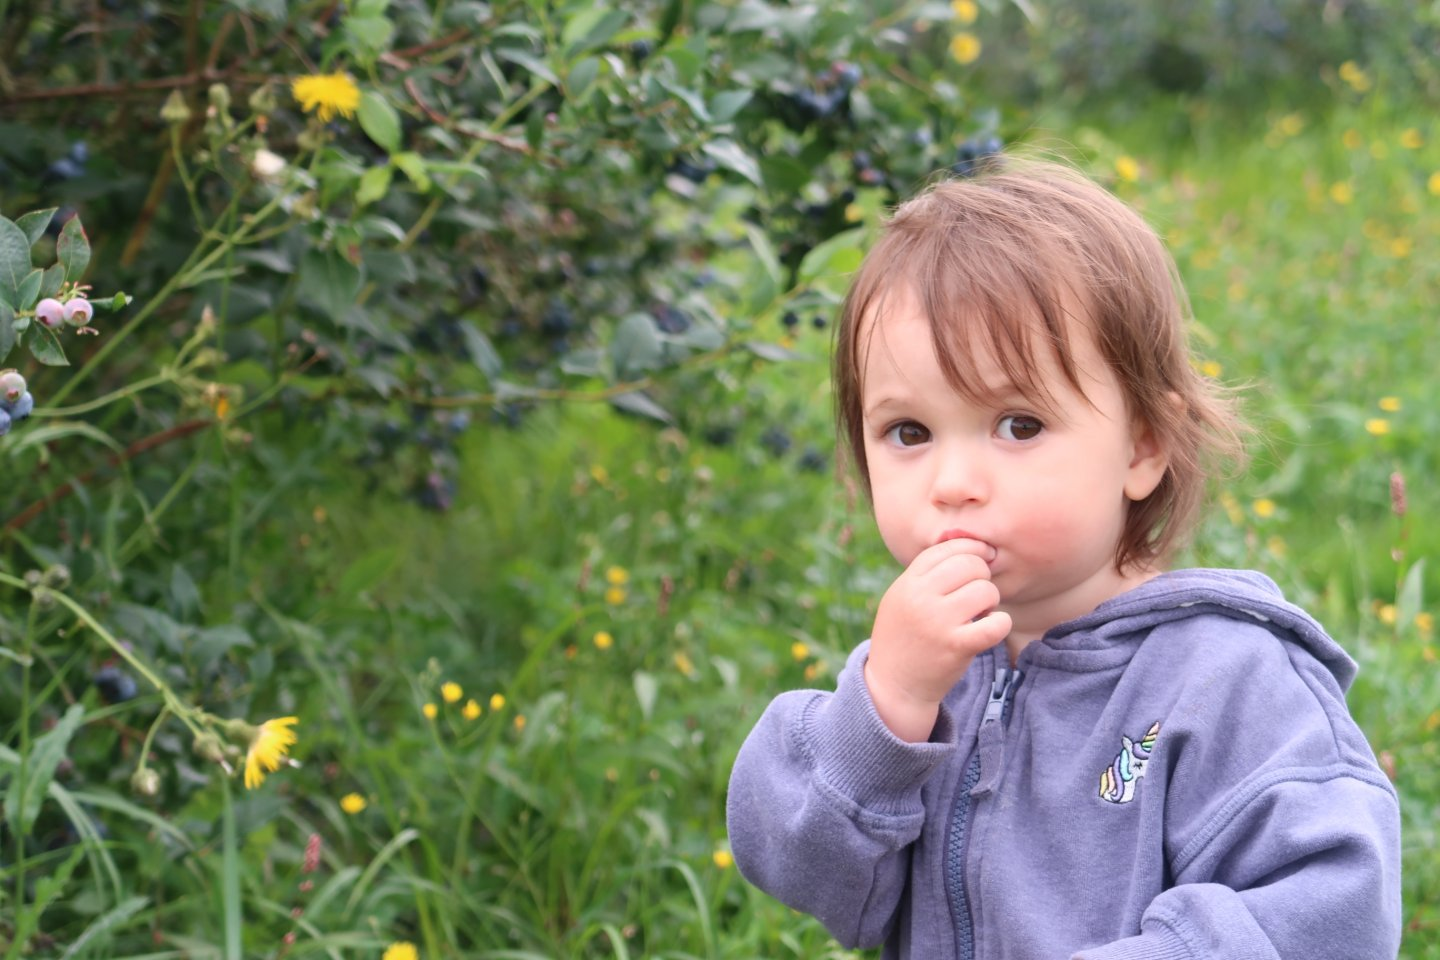 B looking at the camera, with her fingers in her mouth (presumably eating a blueberry!).